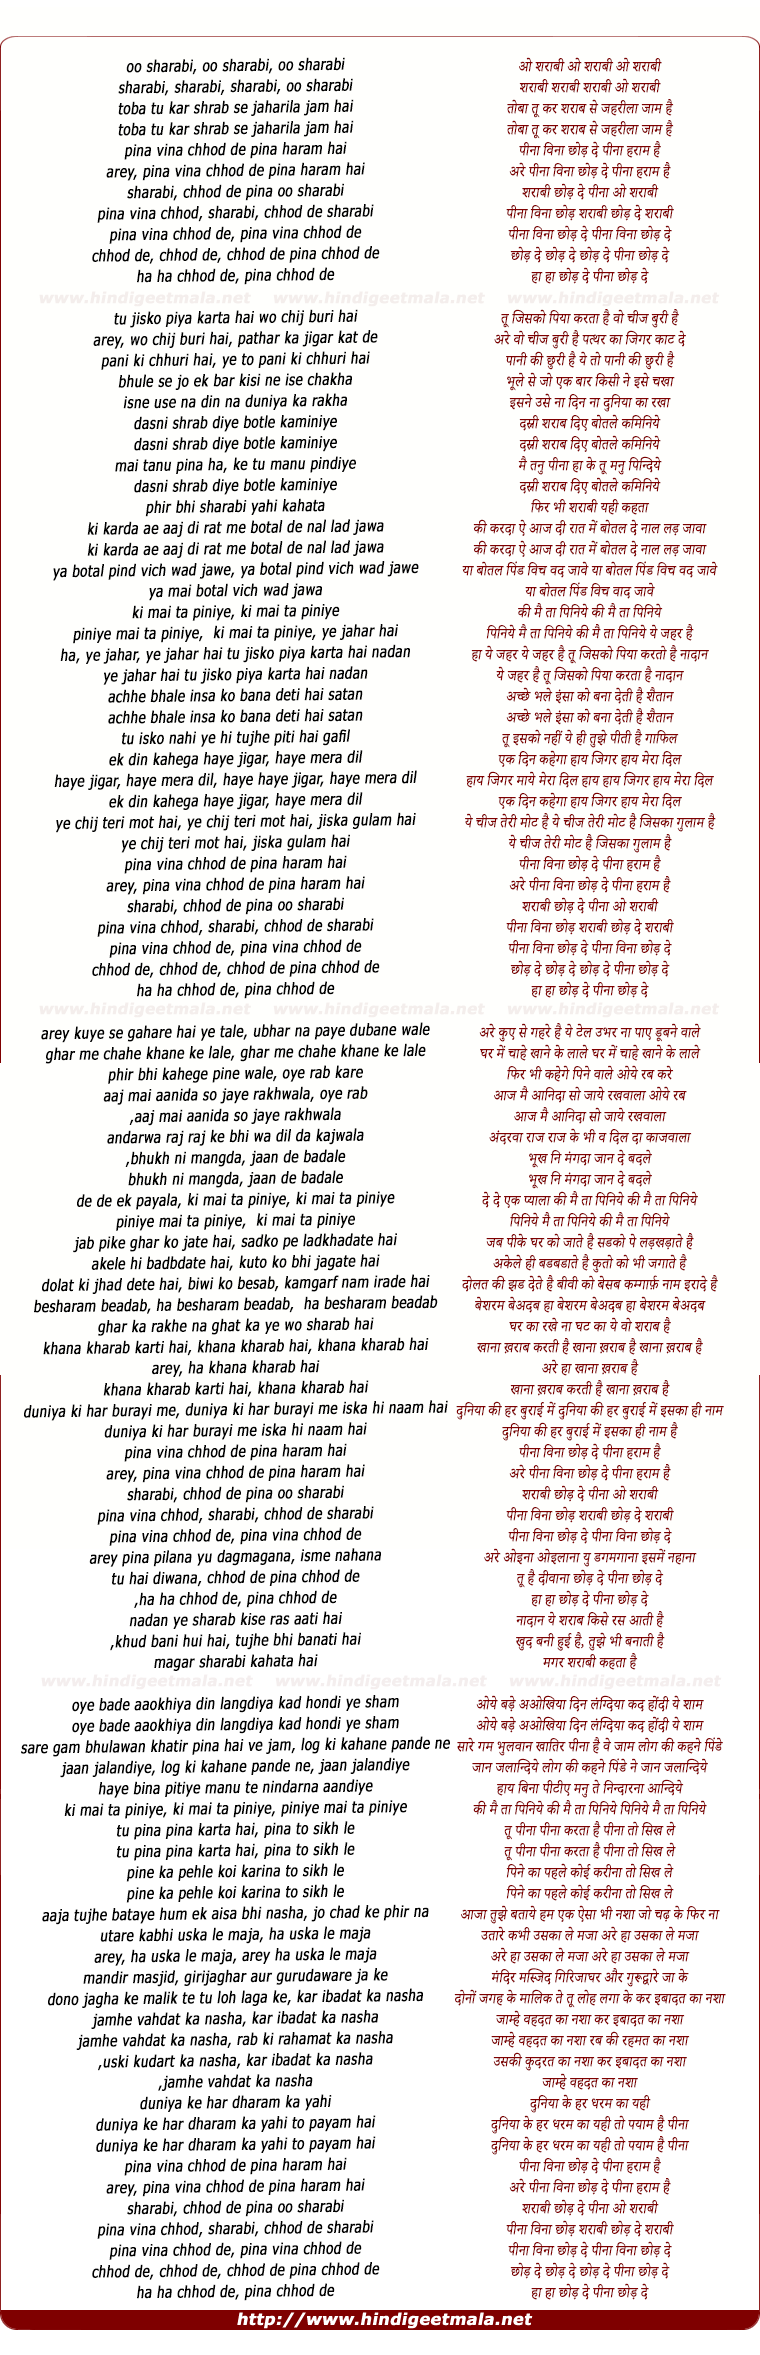 lyrics of song O Sharabi, Peena Veena Chhod De Peena Haram Hai